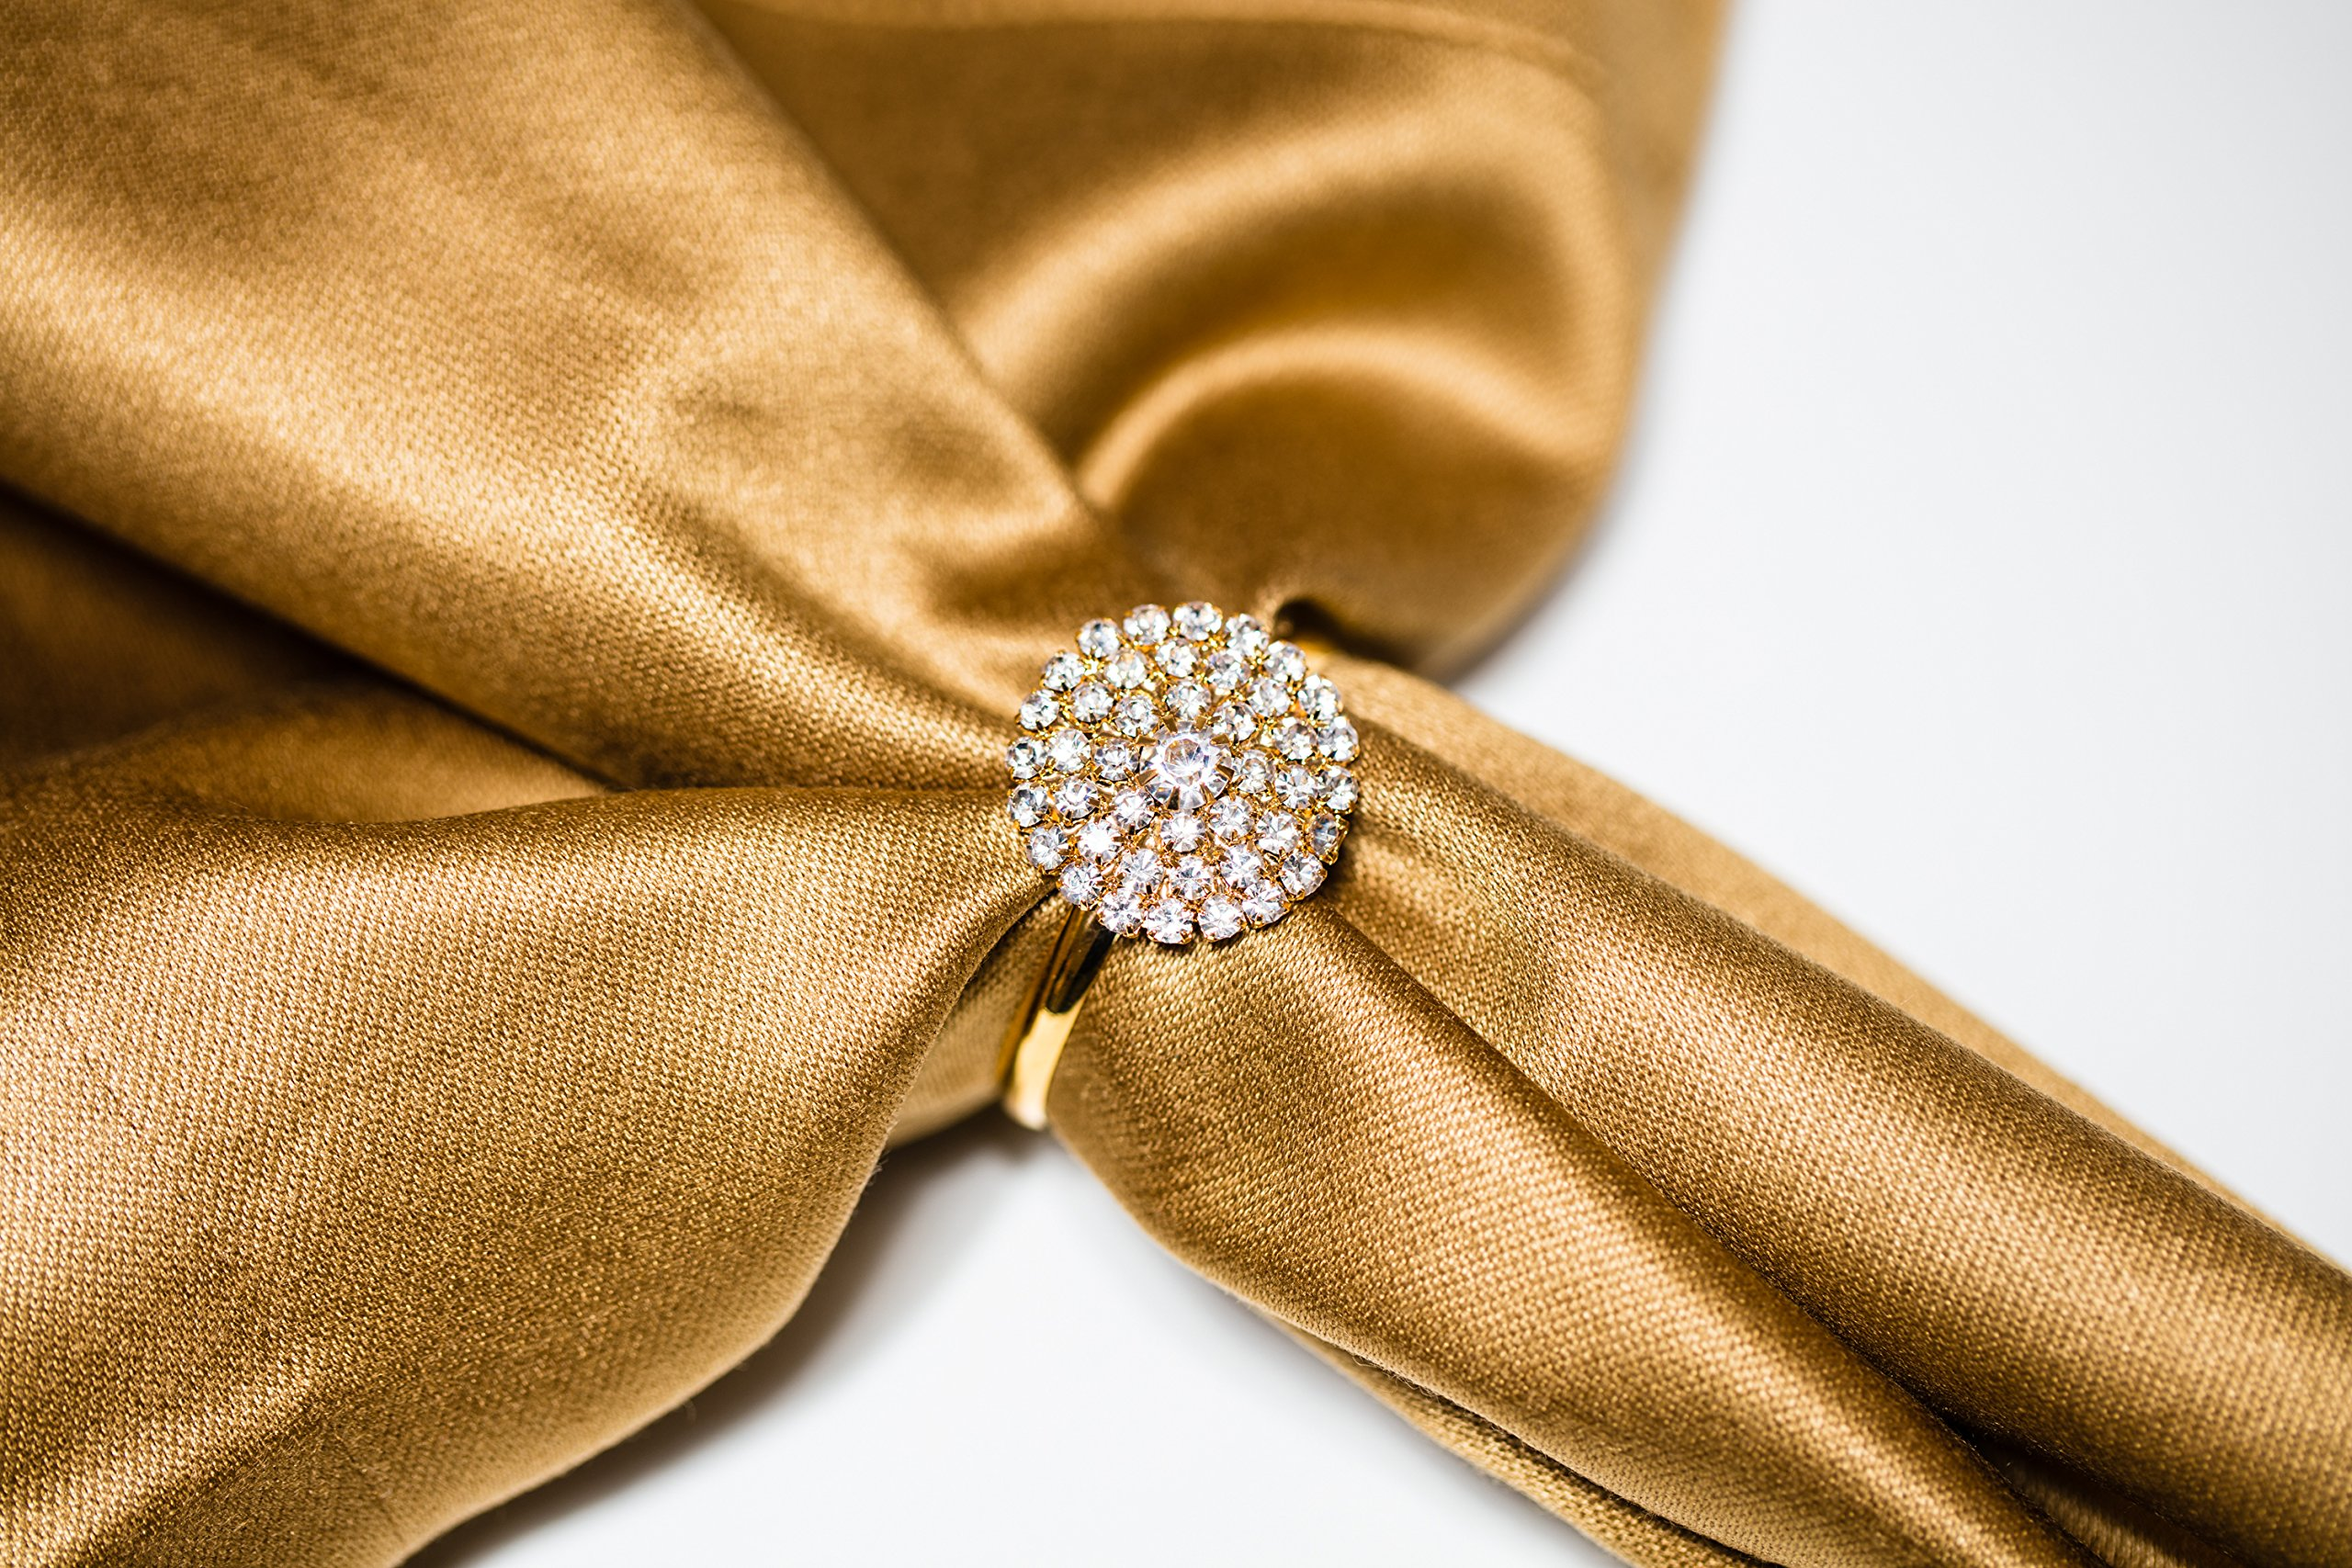 Napkin Rings for Weddings, Parties, and Events 100pc Set Bulk Napkin Rings – Totally Dazzled by Totally Dazzled (Image #5)